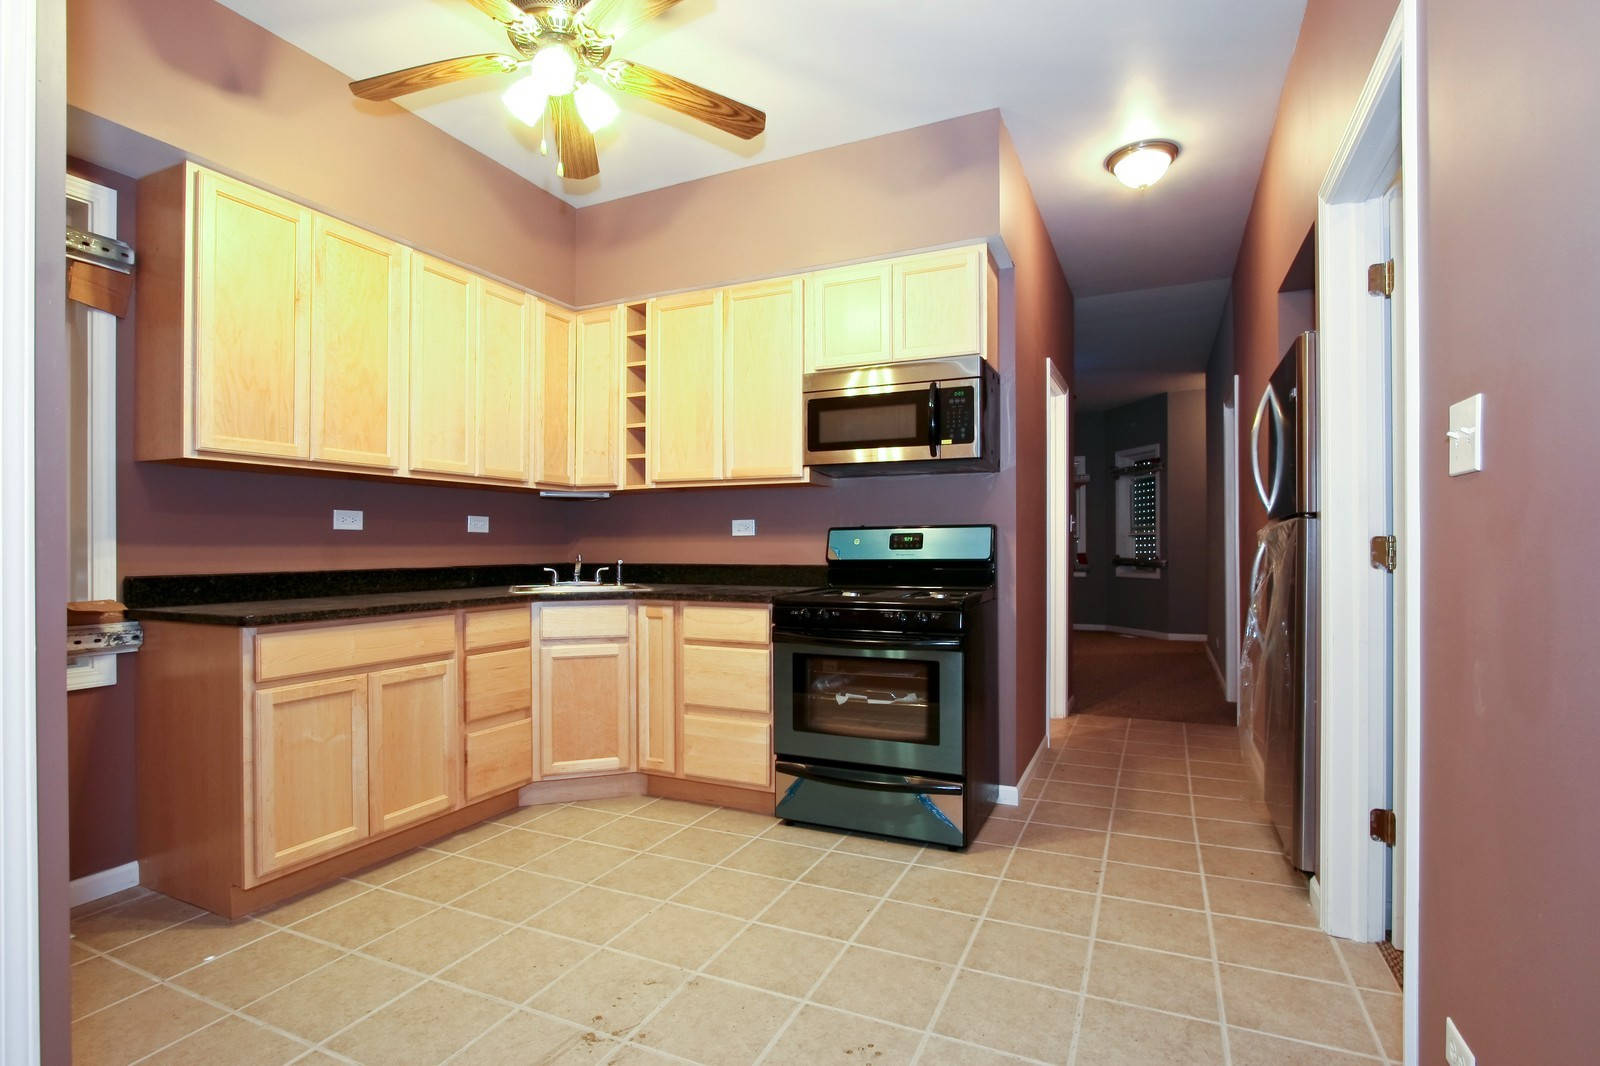 Real Estate Photography - 5237 S Seeley, Chicago, IL, 60609 - Kitchen